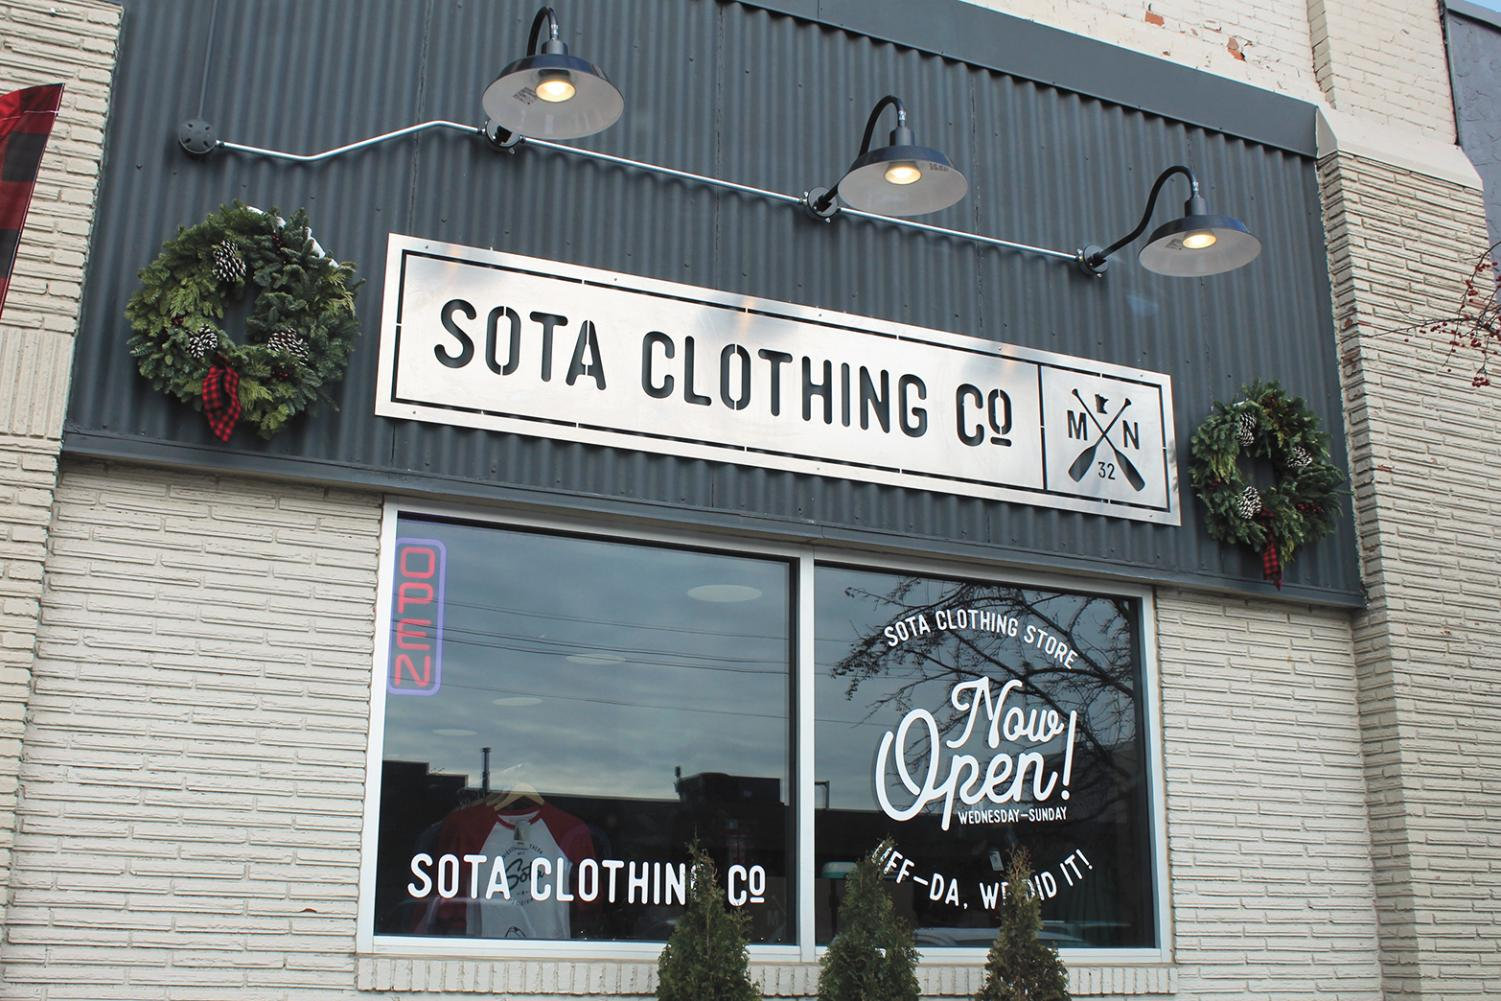 The Sota clothing store opened in Aug. 2018 and can be found at 6518 Walker St, St Louis Park or visited online at sotaclothing.com.